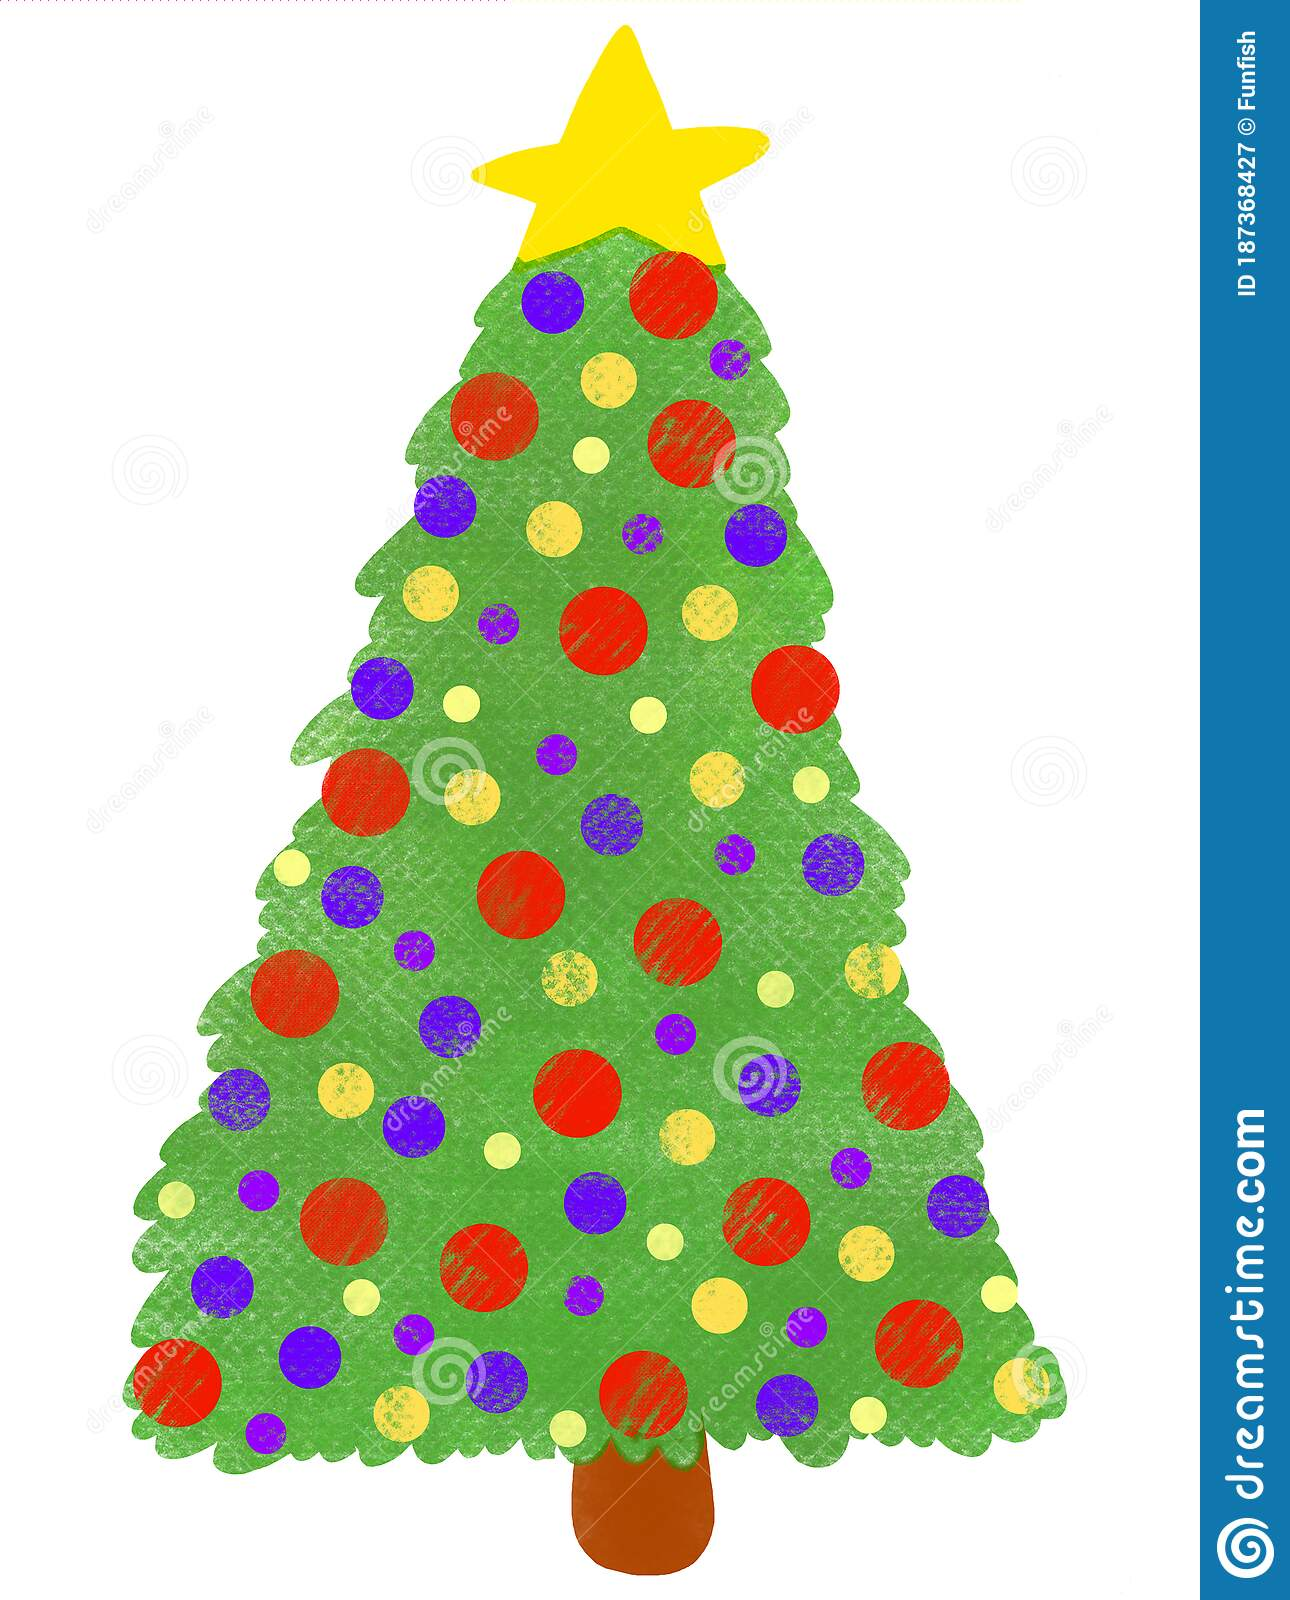 5 682 Christmas Tree Cartoon Photos Free Royalty Free Stock Photos From Dreamstime See more ideas about cartoon christmas tree, christmas, christmas tree. 5 682 christmas tree cartoon photos free royalty free stock photos from dreamstime